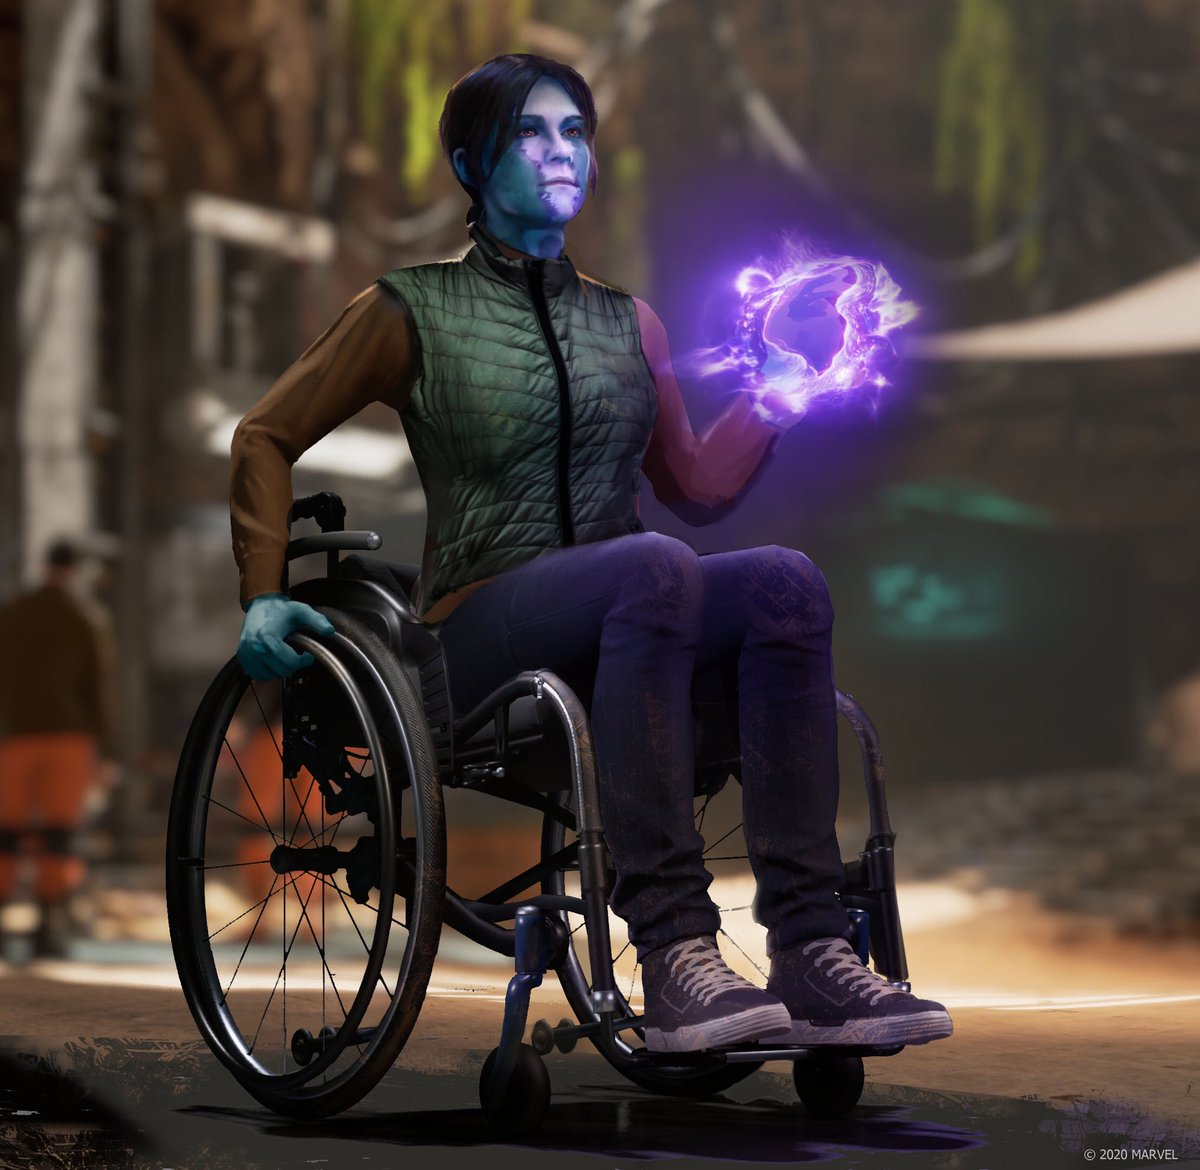 Big news!!! I've been dying to talk about this for a year and a half!!! Last year... I did some Motion Capture for @CrystalDynamics' @PlayAvengers in my wheelchair👩🏻🦽 A sneak peek at the character based on my moves! And look, it's me with real life stunt men!!! In a funny suit!! twitter.com/playavengers/s…